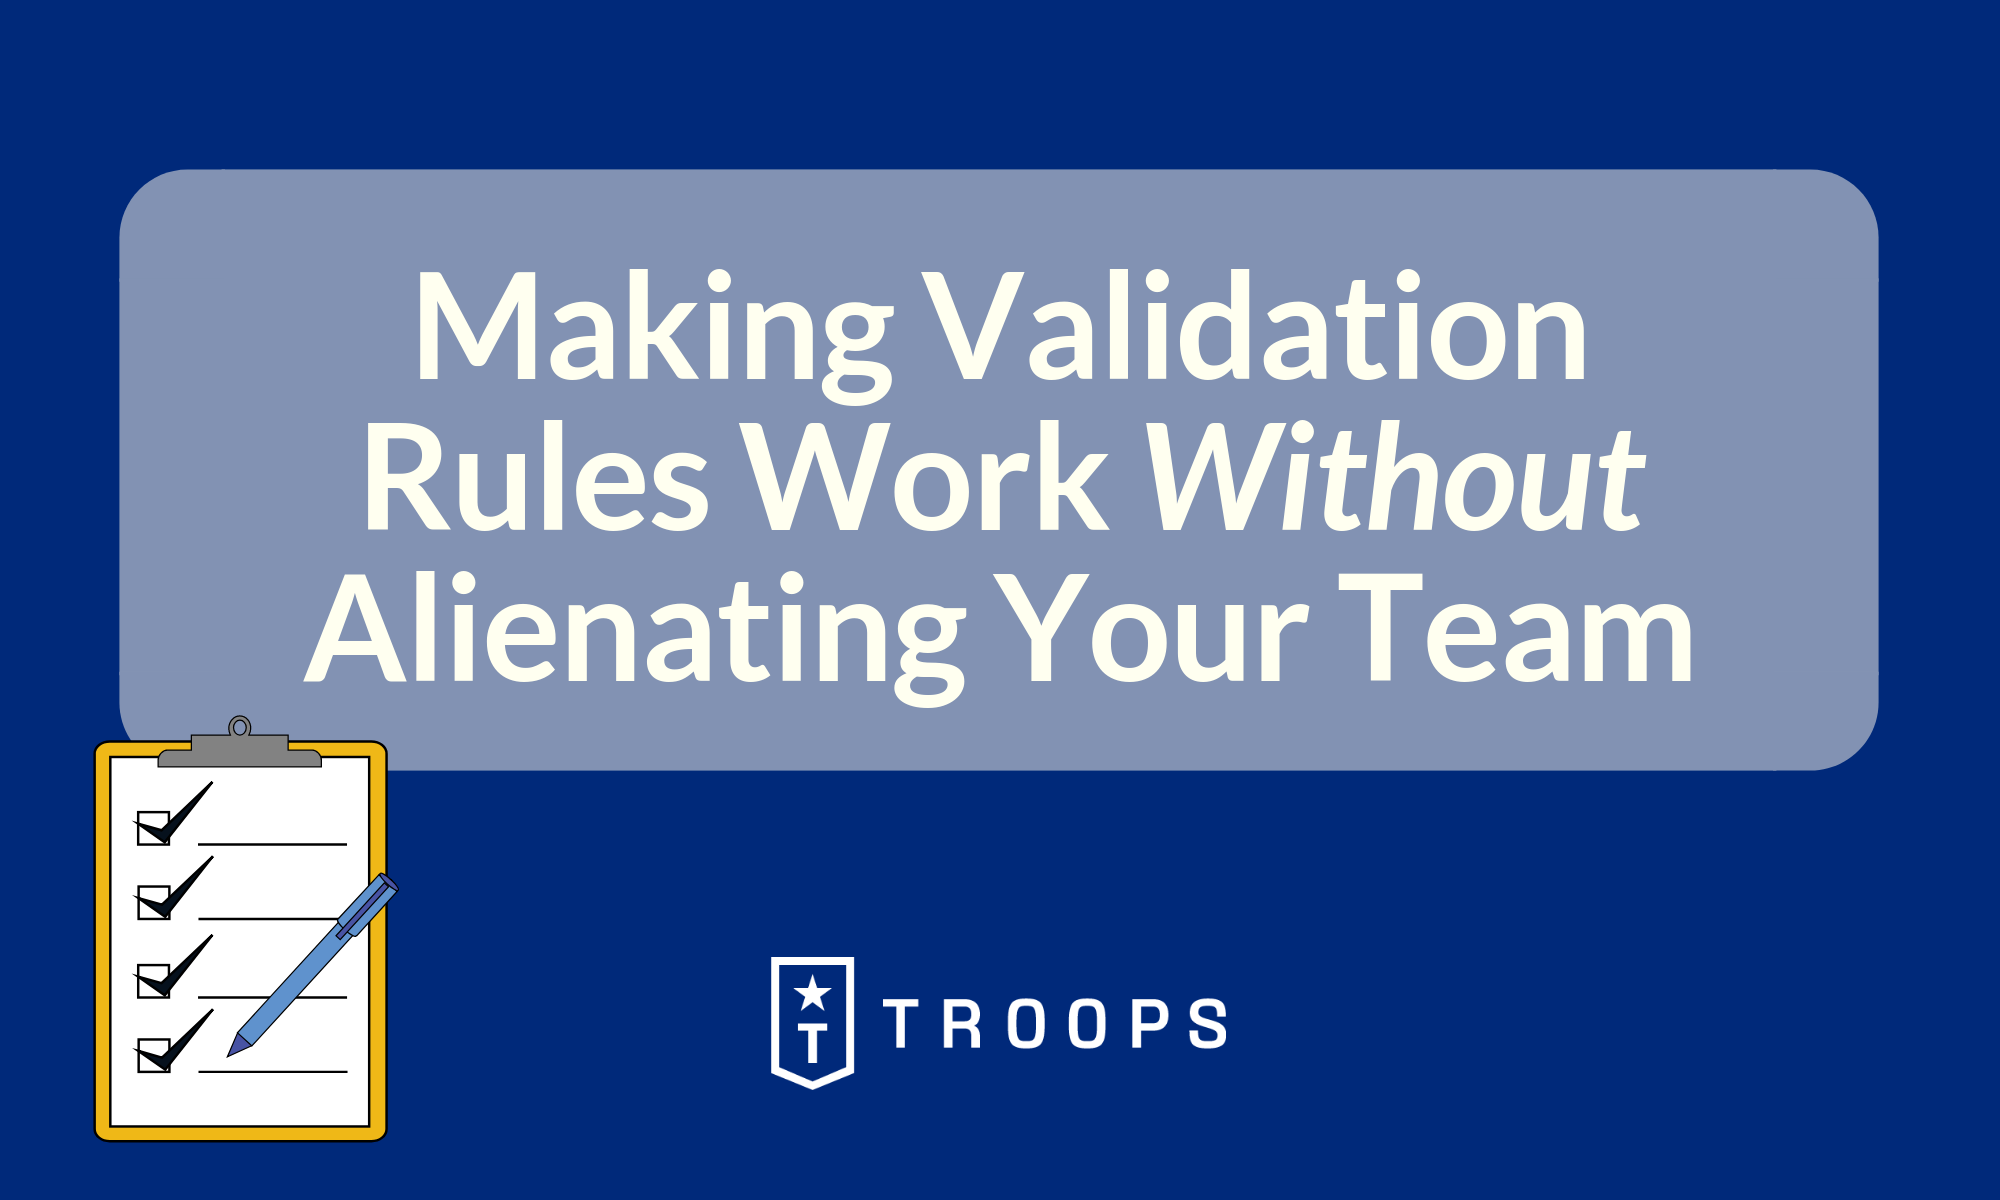 Making Salesforce Validation Rules Work Without Alienating Your Team